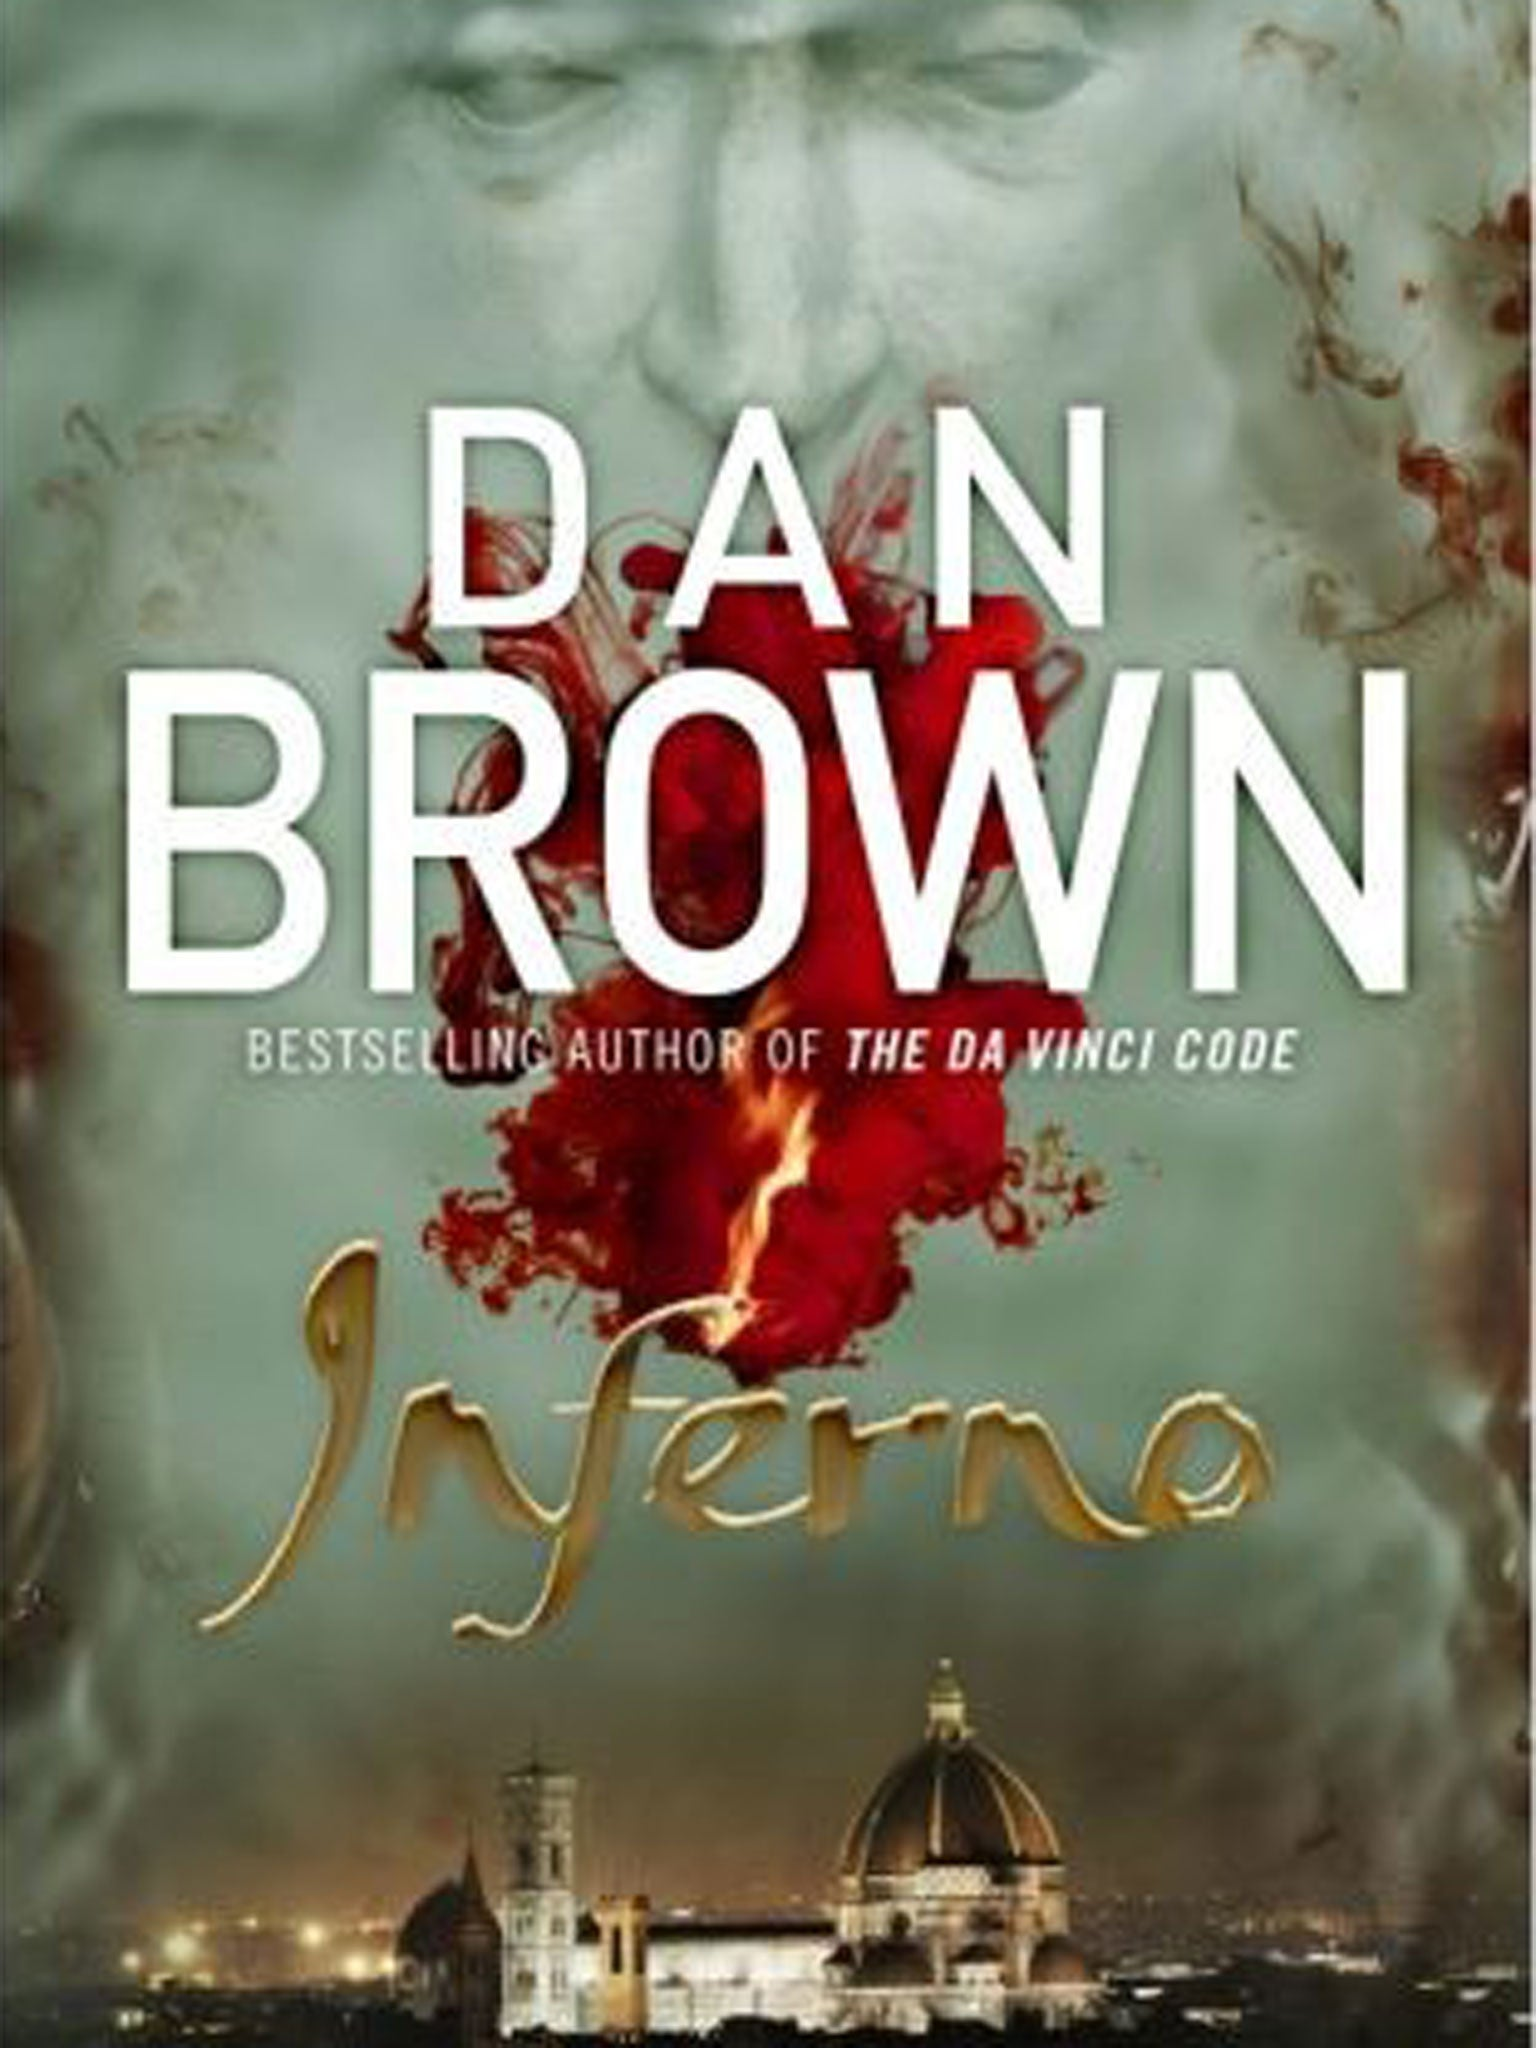 Enter the inferno dan browns worst book yet tops bestseller enter the inferno dan browns worst book yet tops bestseller lists on its first day the independent buycottarizona